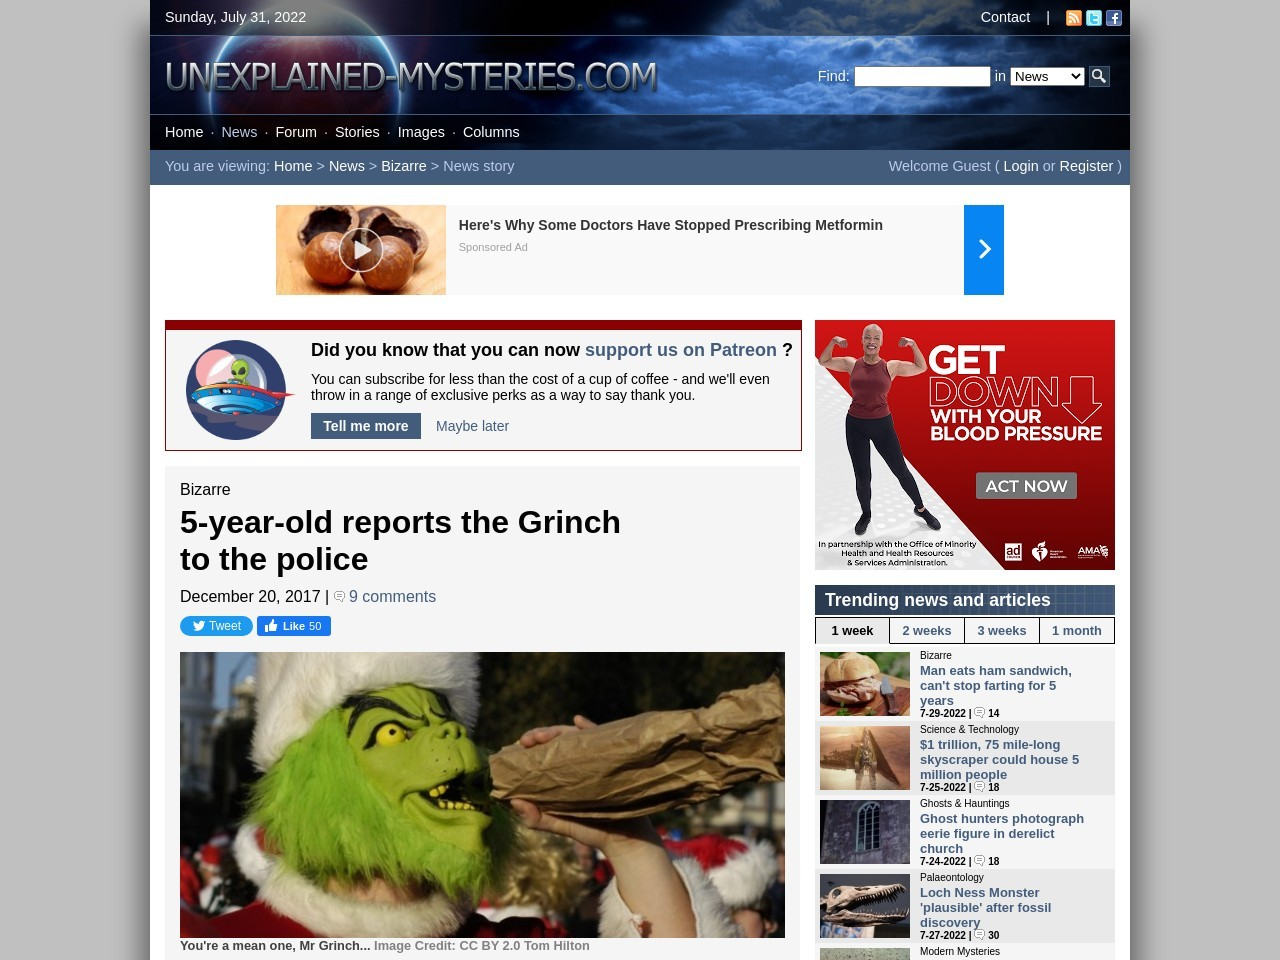 5-year-old reports the Grinch to the police